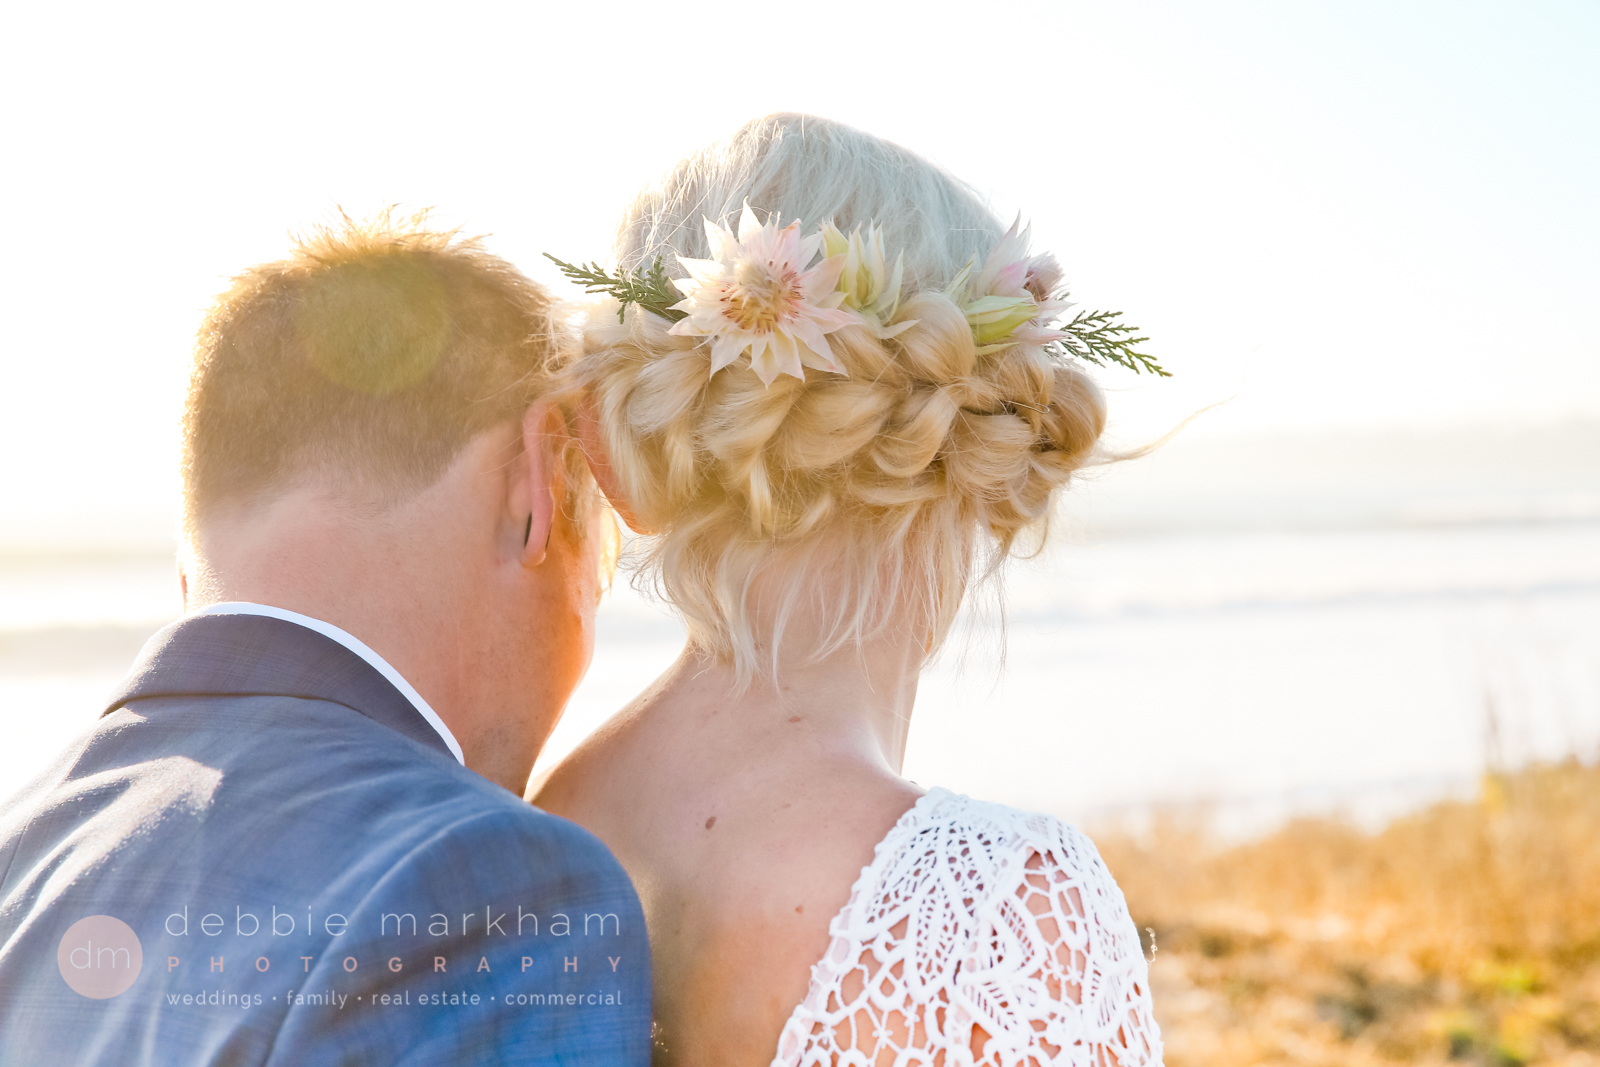 Ocean View, Cliffside Wedding in Big Sur